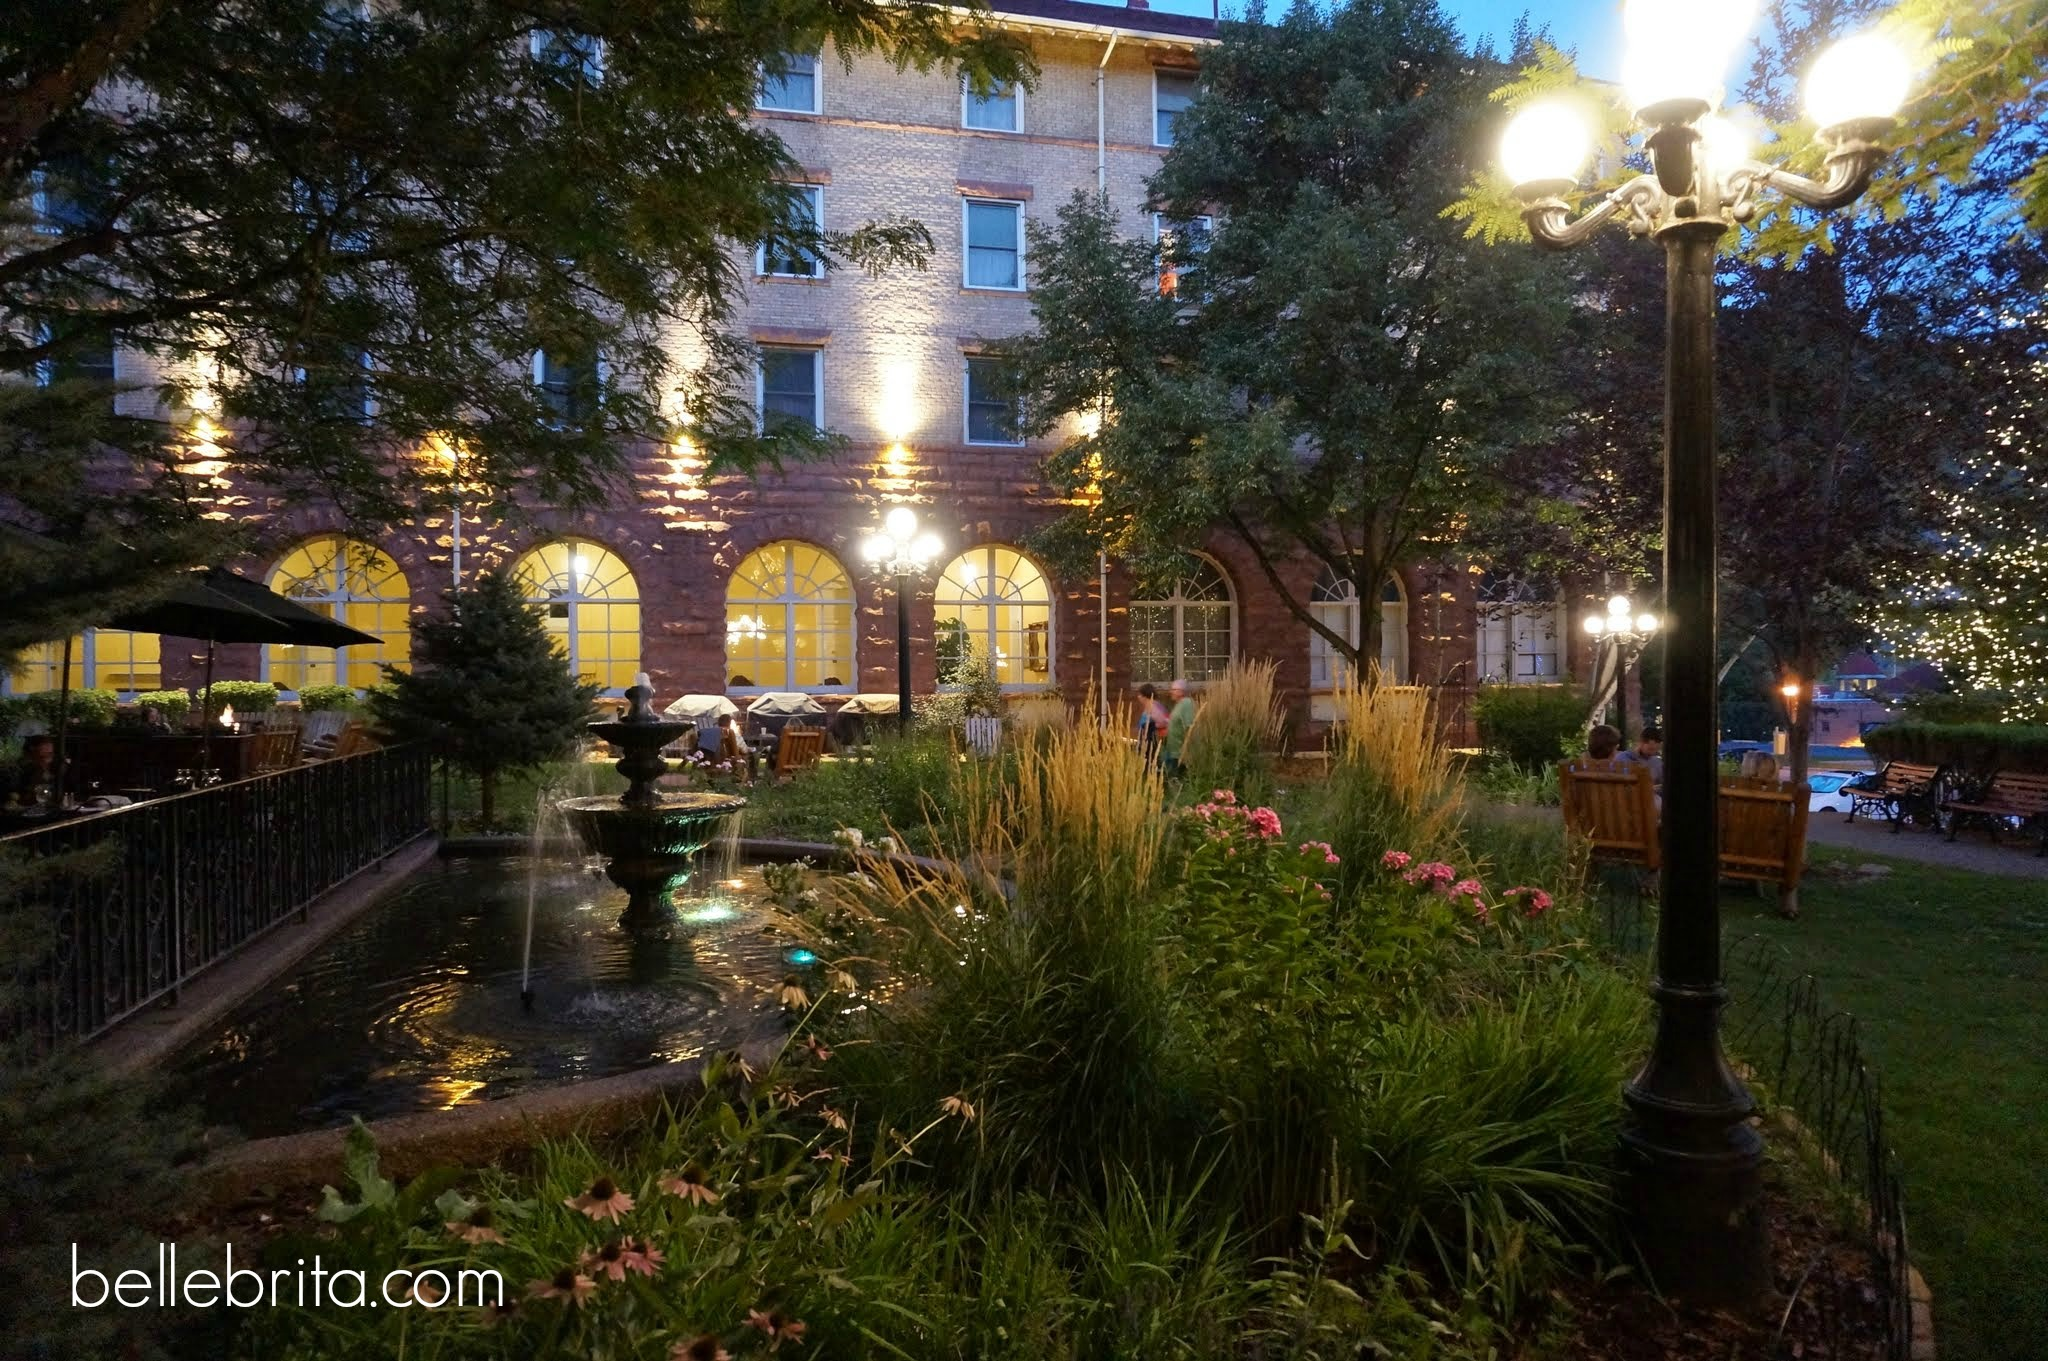 Glenwood Springs Travels Romance And Relaxation Belle Brita